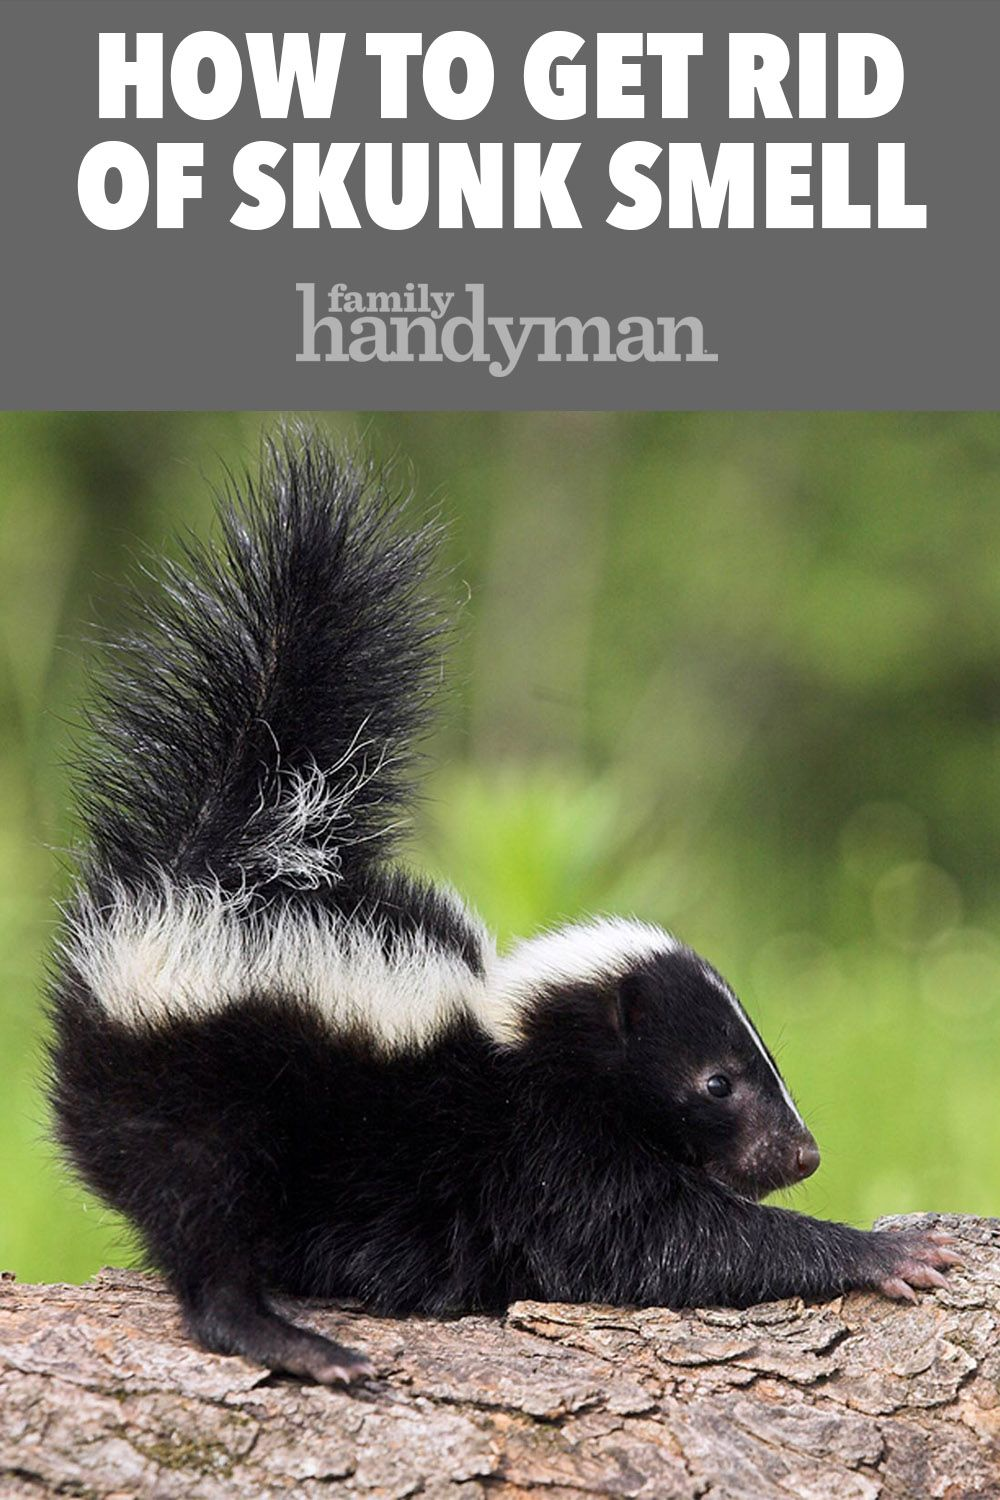 How To Get Rid Of Skunk Smell Skunk Smell Getting Rid Of Skunks